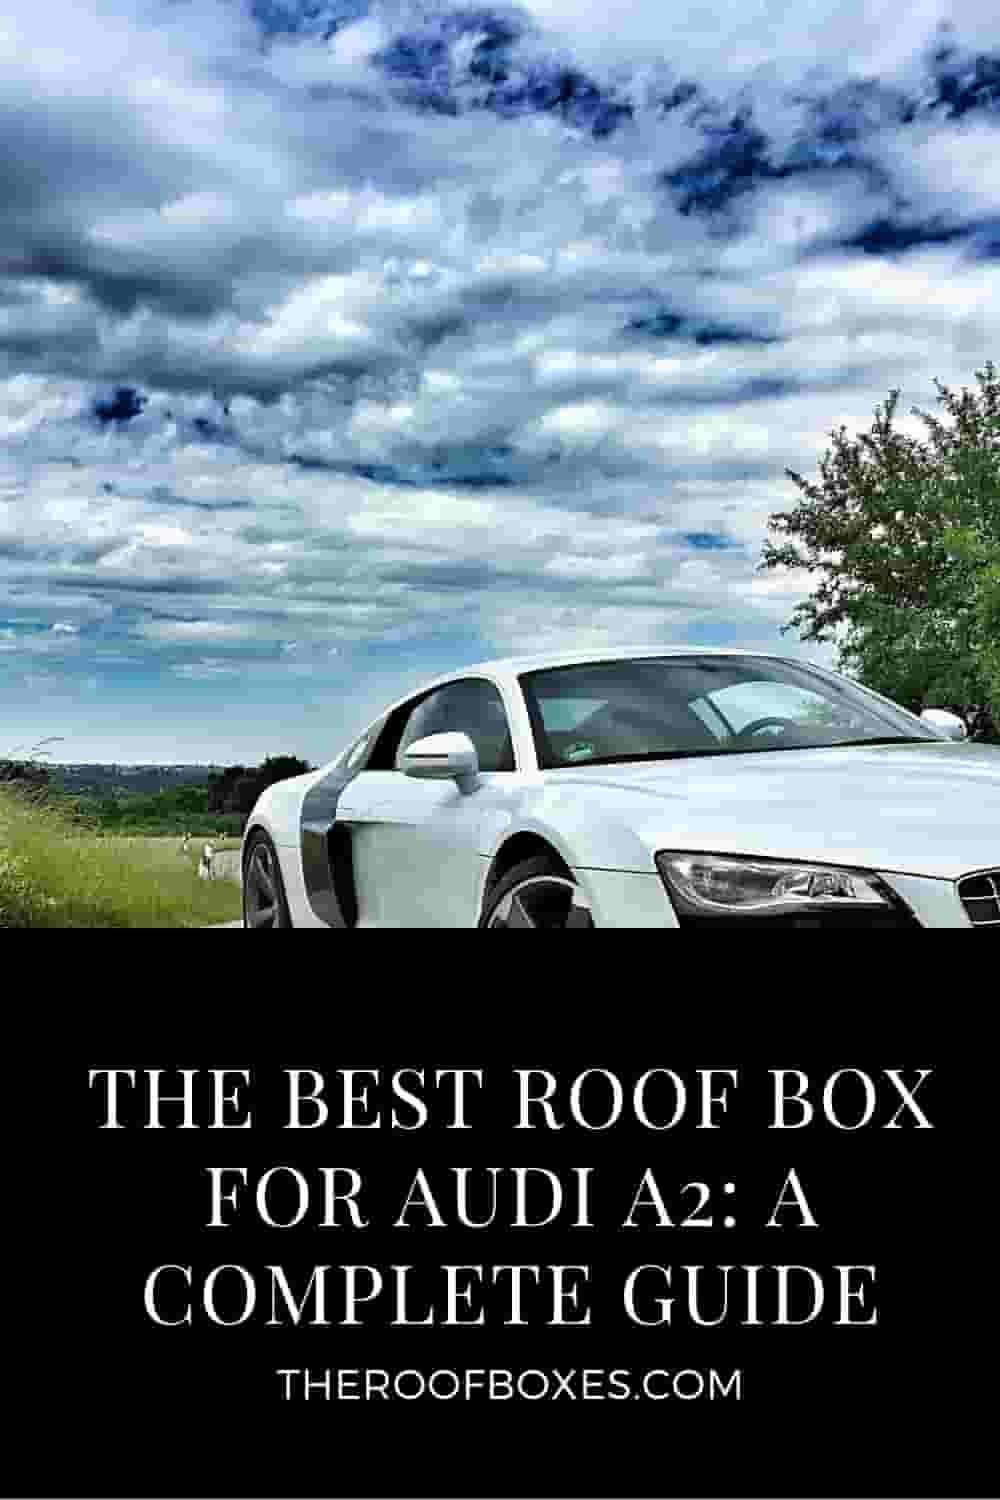 Roof Box for Audi A2 – Reviews and Comparison